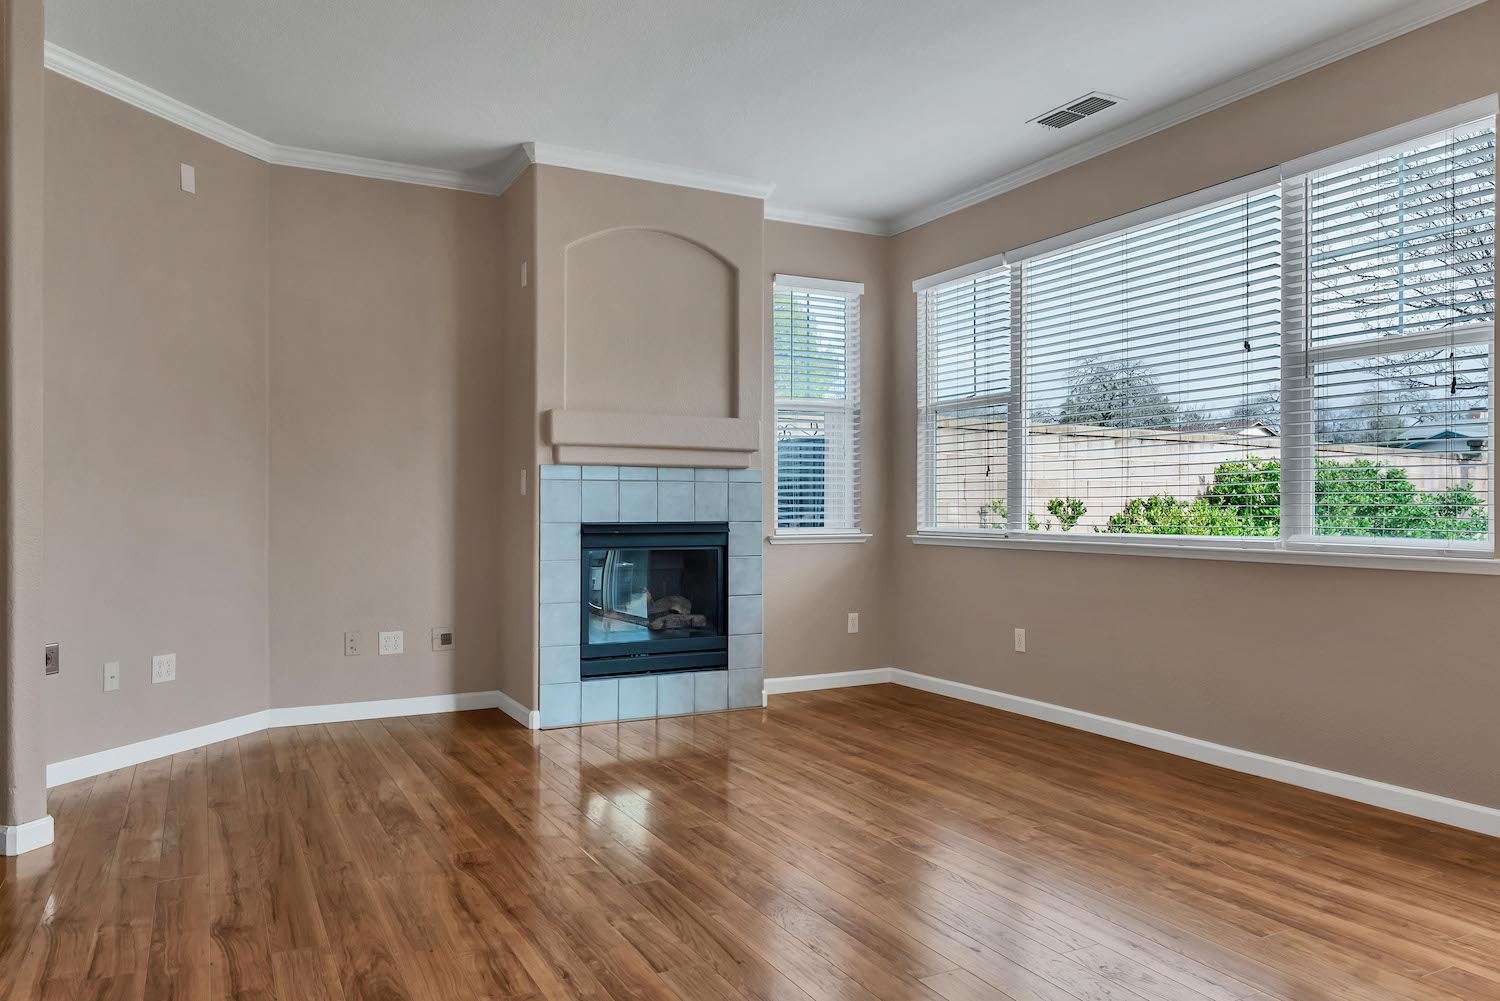 Living room of the home at 5903 Lindsay Ct, Rocklin, Ca 95677